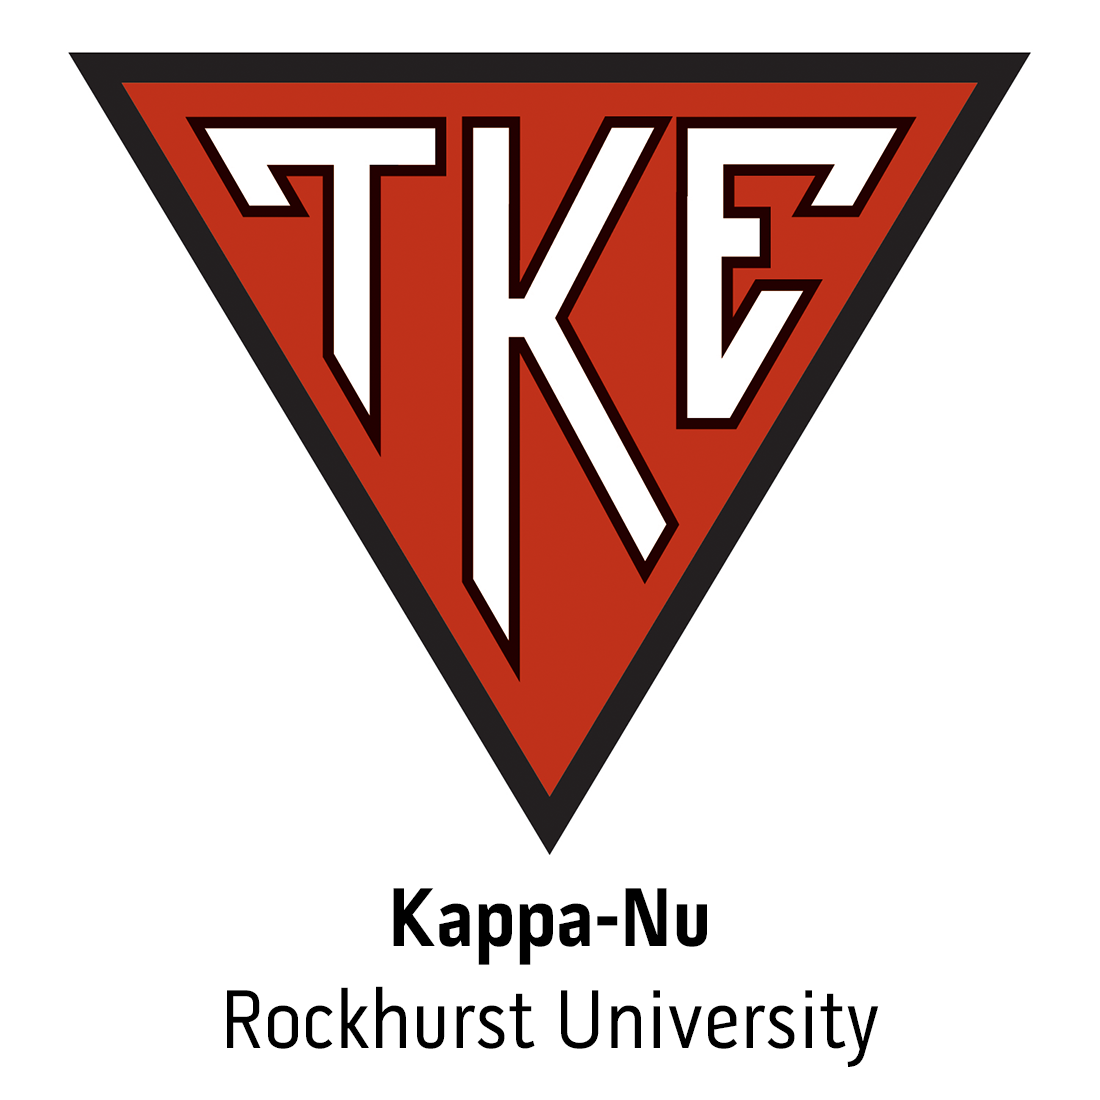 Image Credit: Tau Kappa Epsilon's Official Website